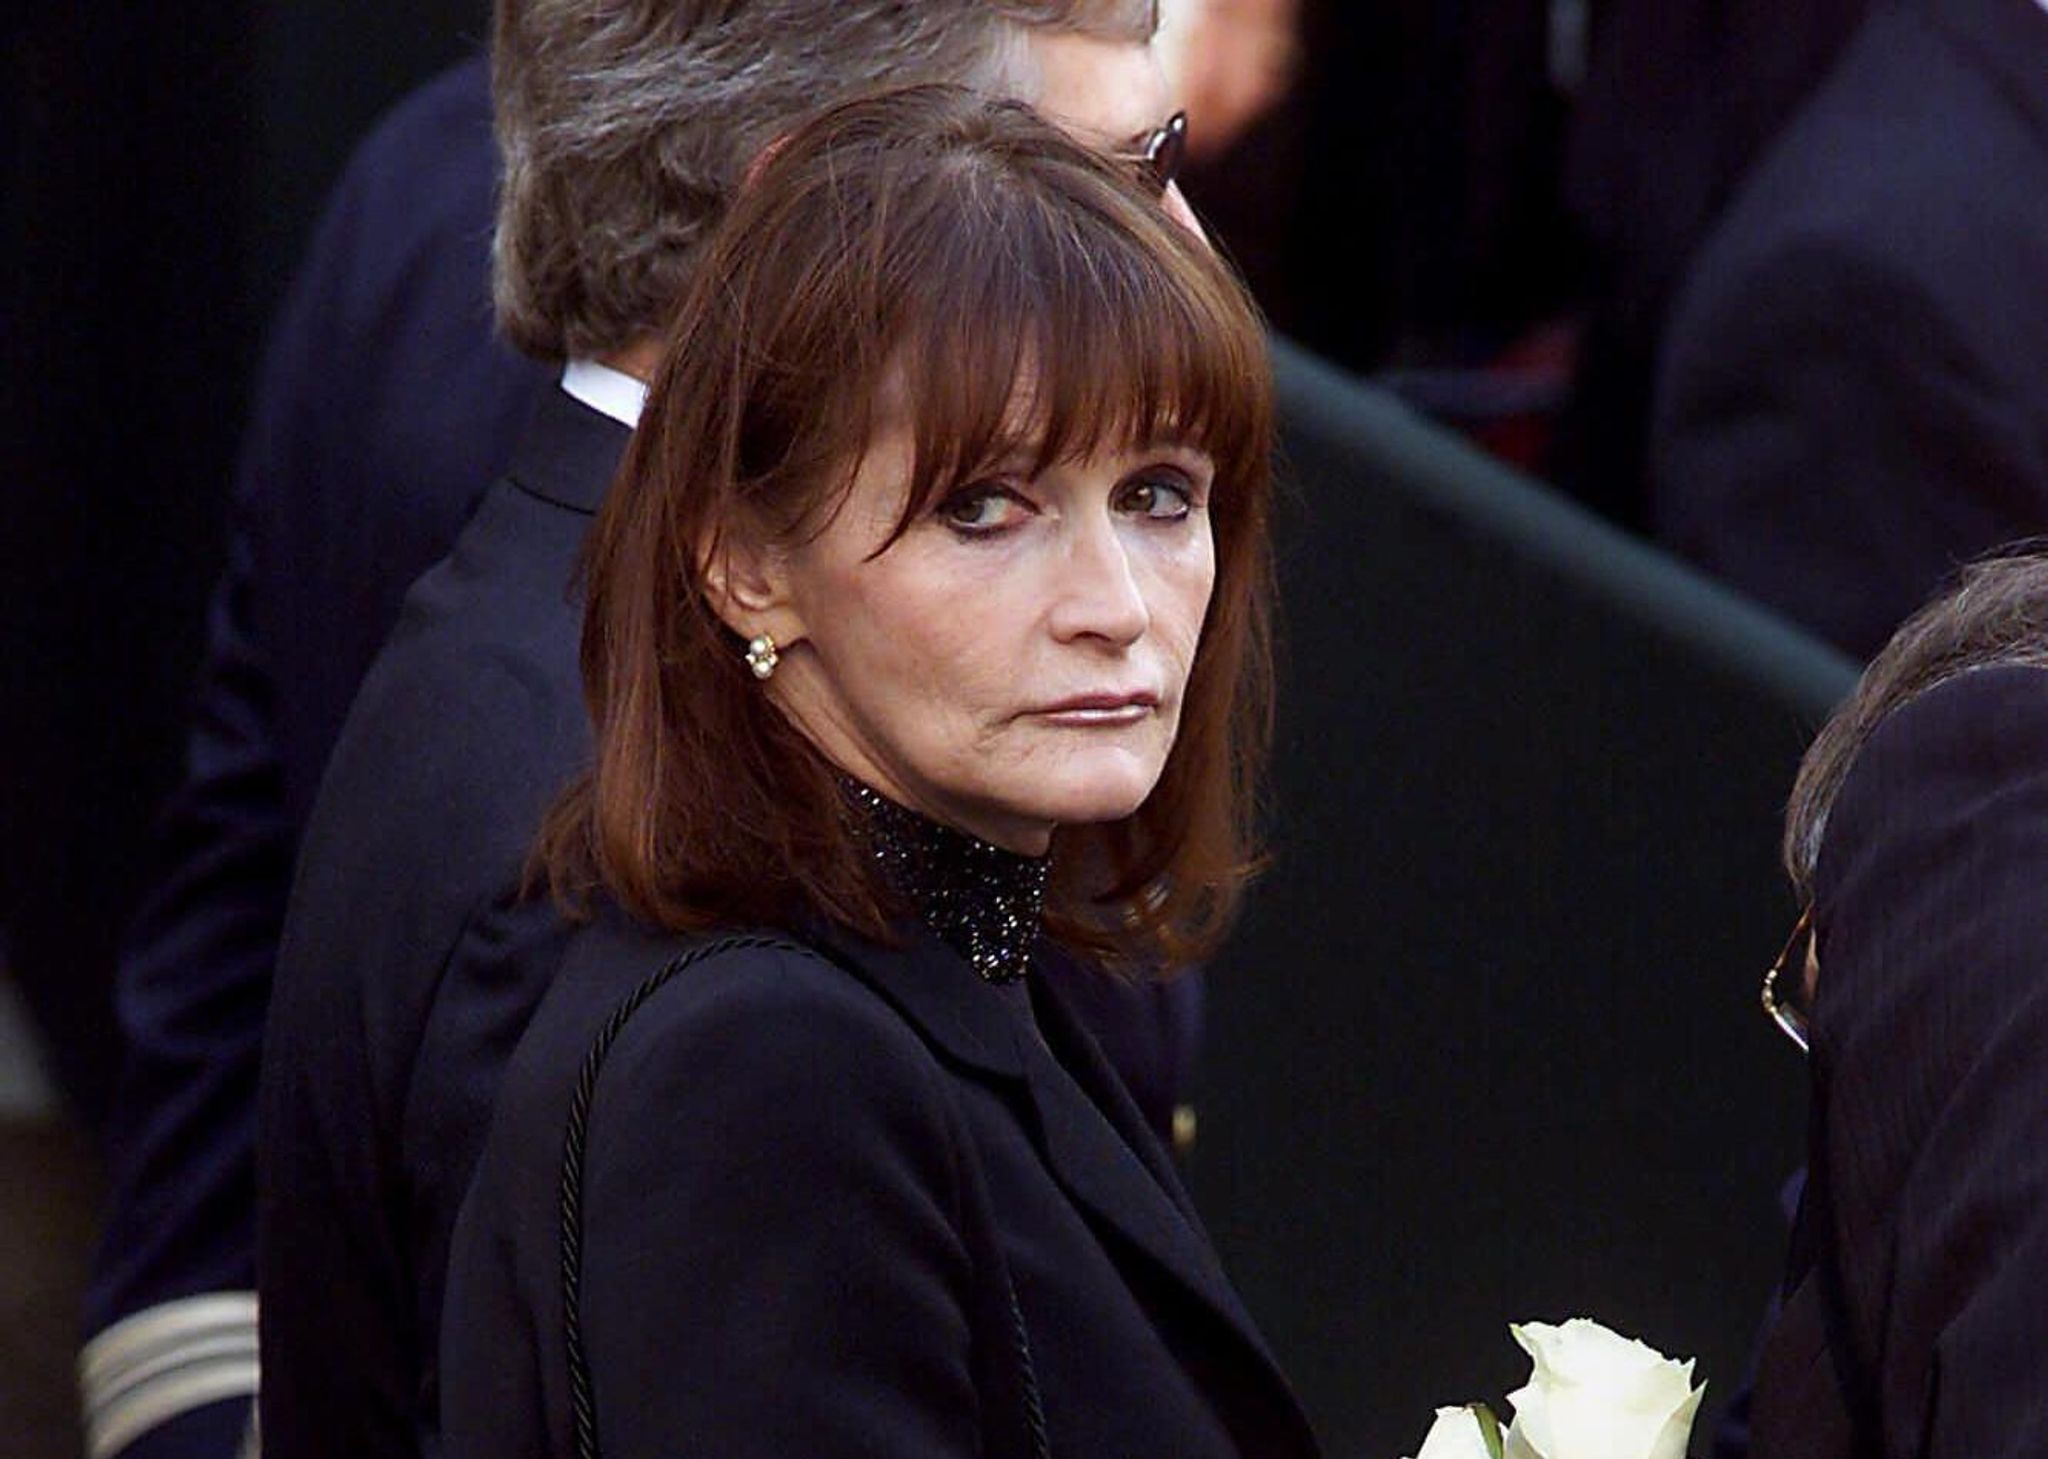 Express uk reported margot kidder dead watch late superman star as margot kidder lois lane in the superman franchise dies no further details were given and messages left with kidders representatives were not altavistaventures Choice Image